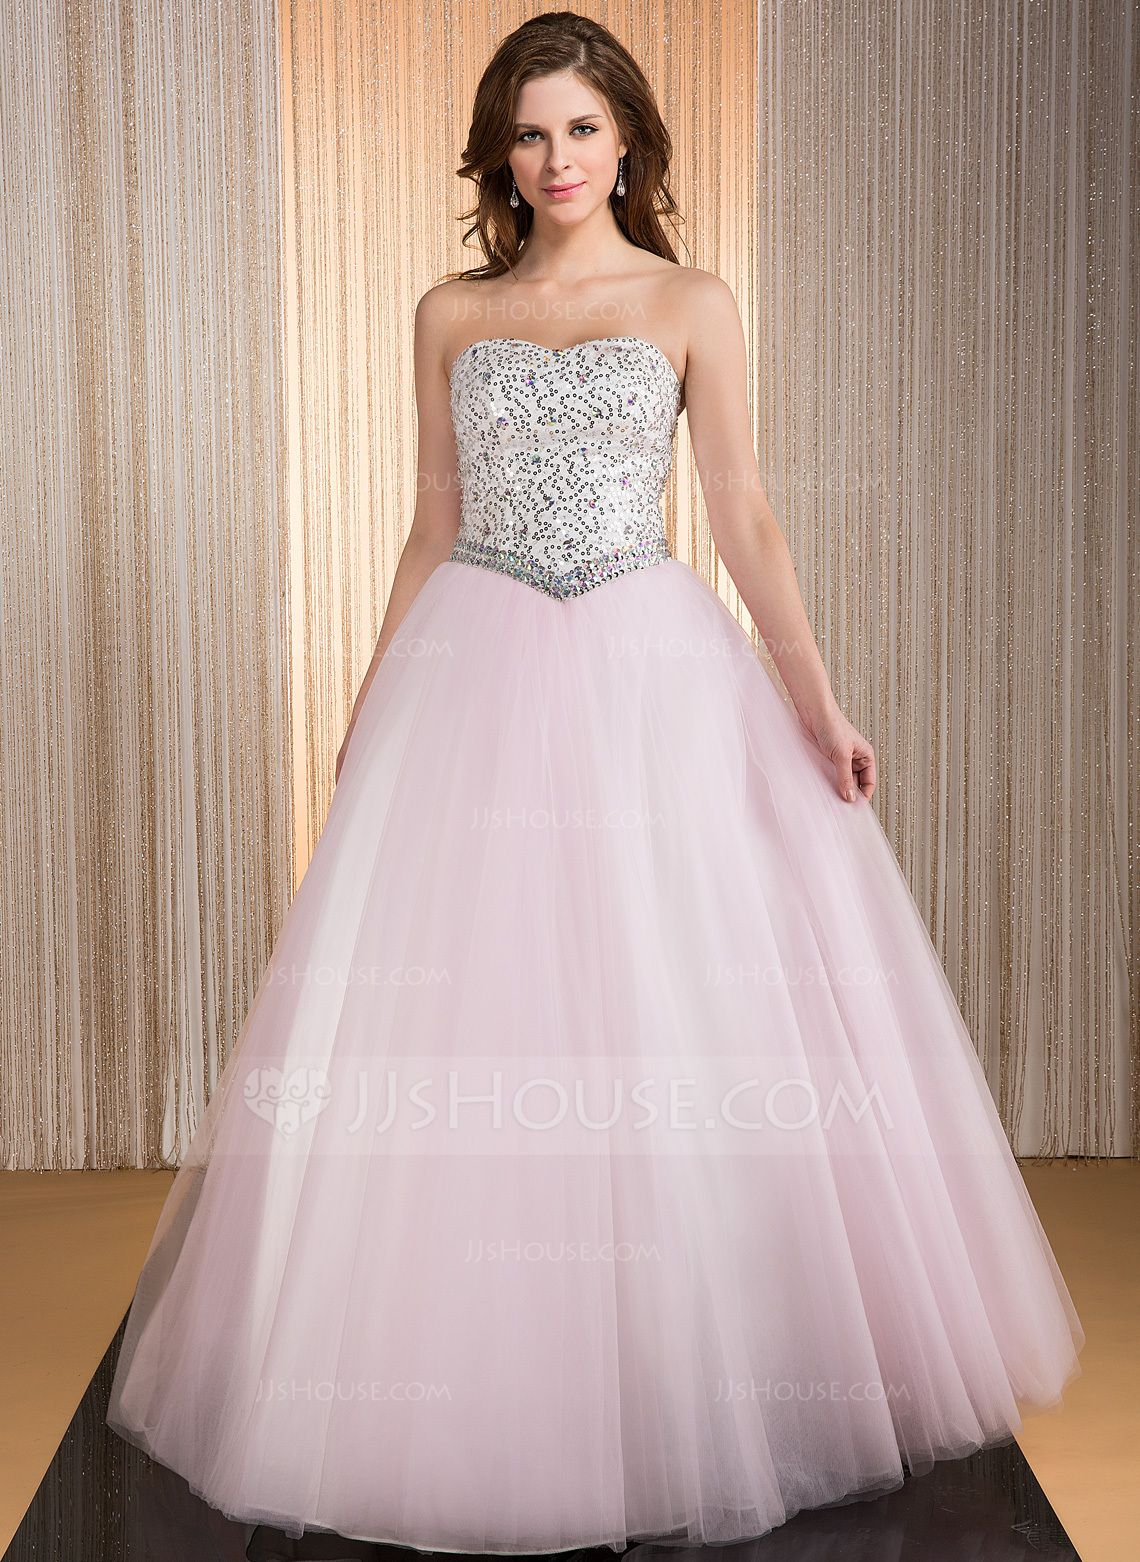 4f46051b674 Tulle Sweetheart Beading Ball Gown Floor Length Quinceanera Dress ...